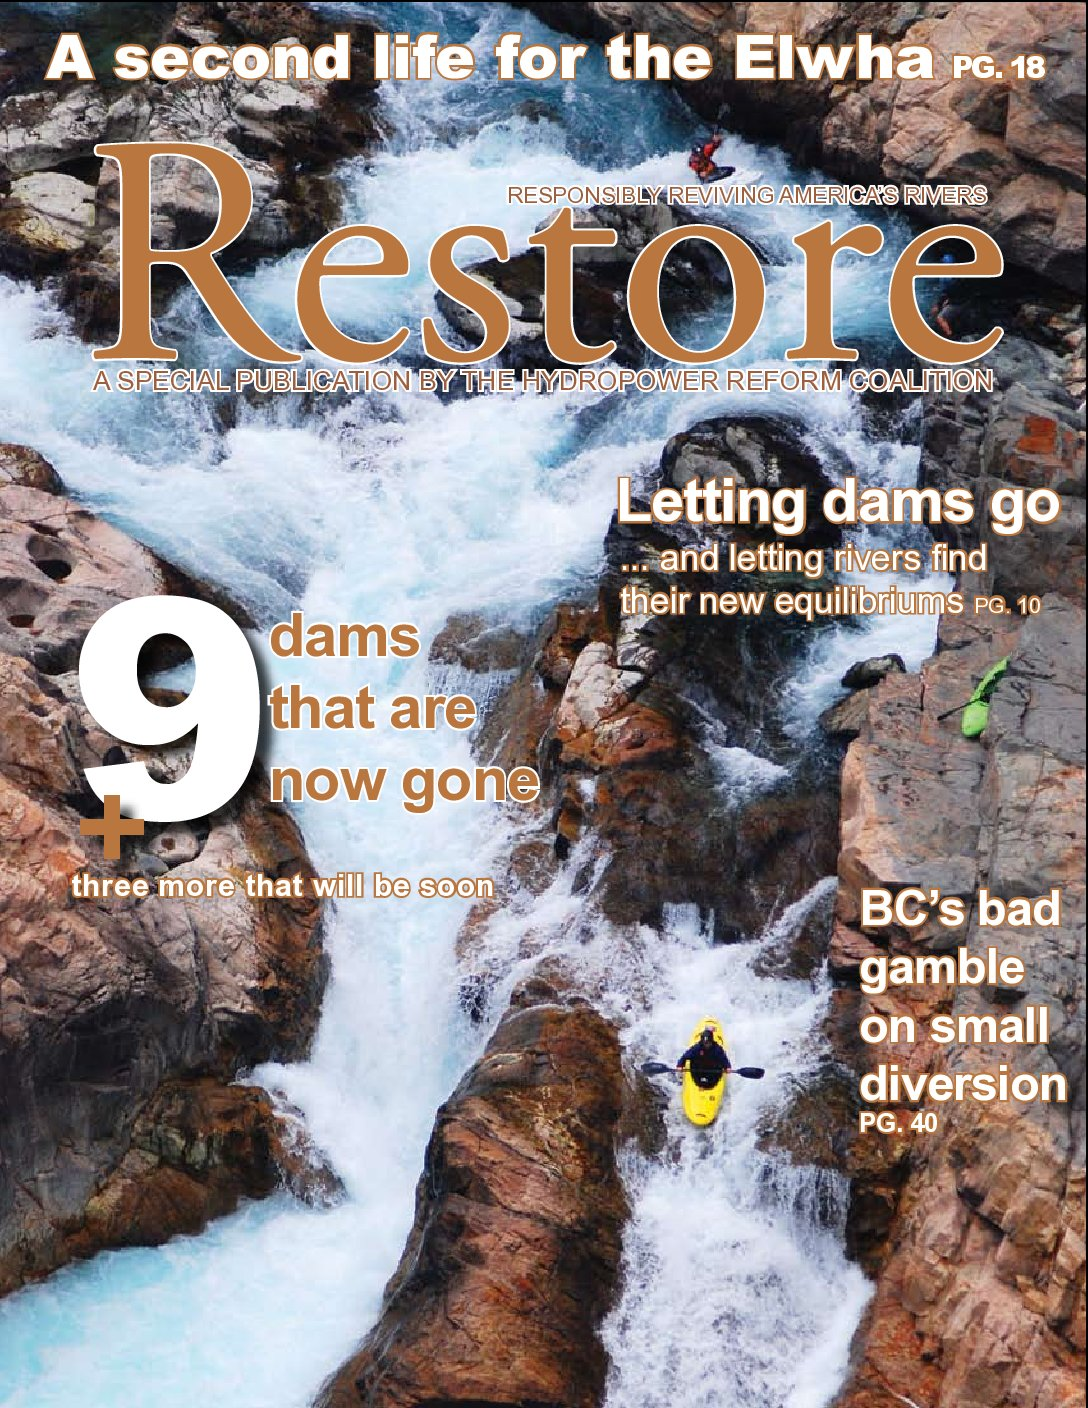 Restore: A Special Publication by the Hydropower Reform Coalition